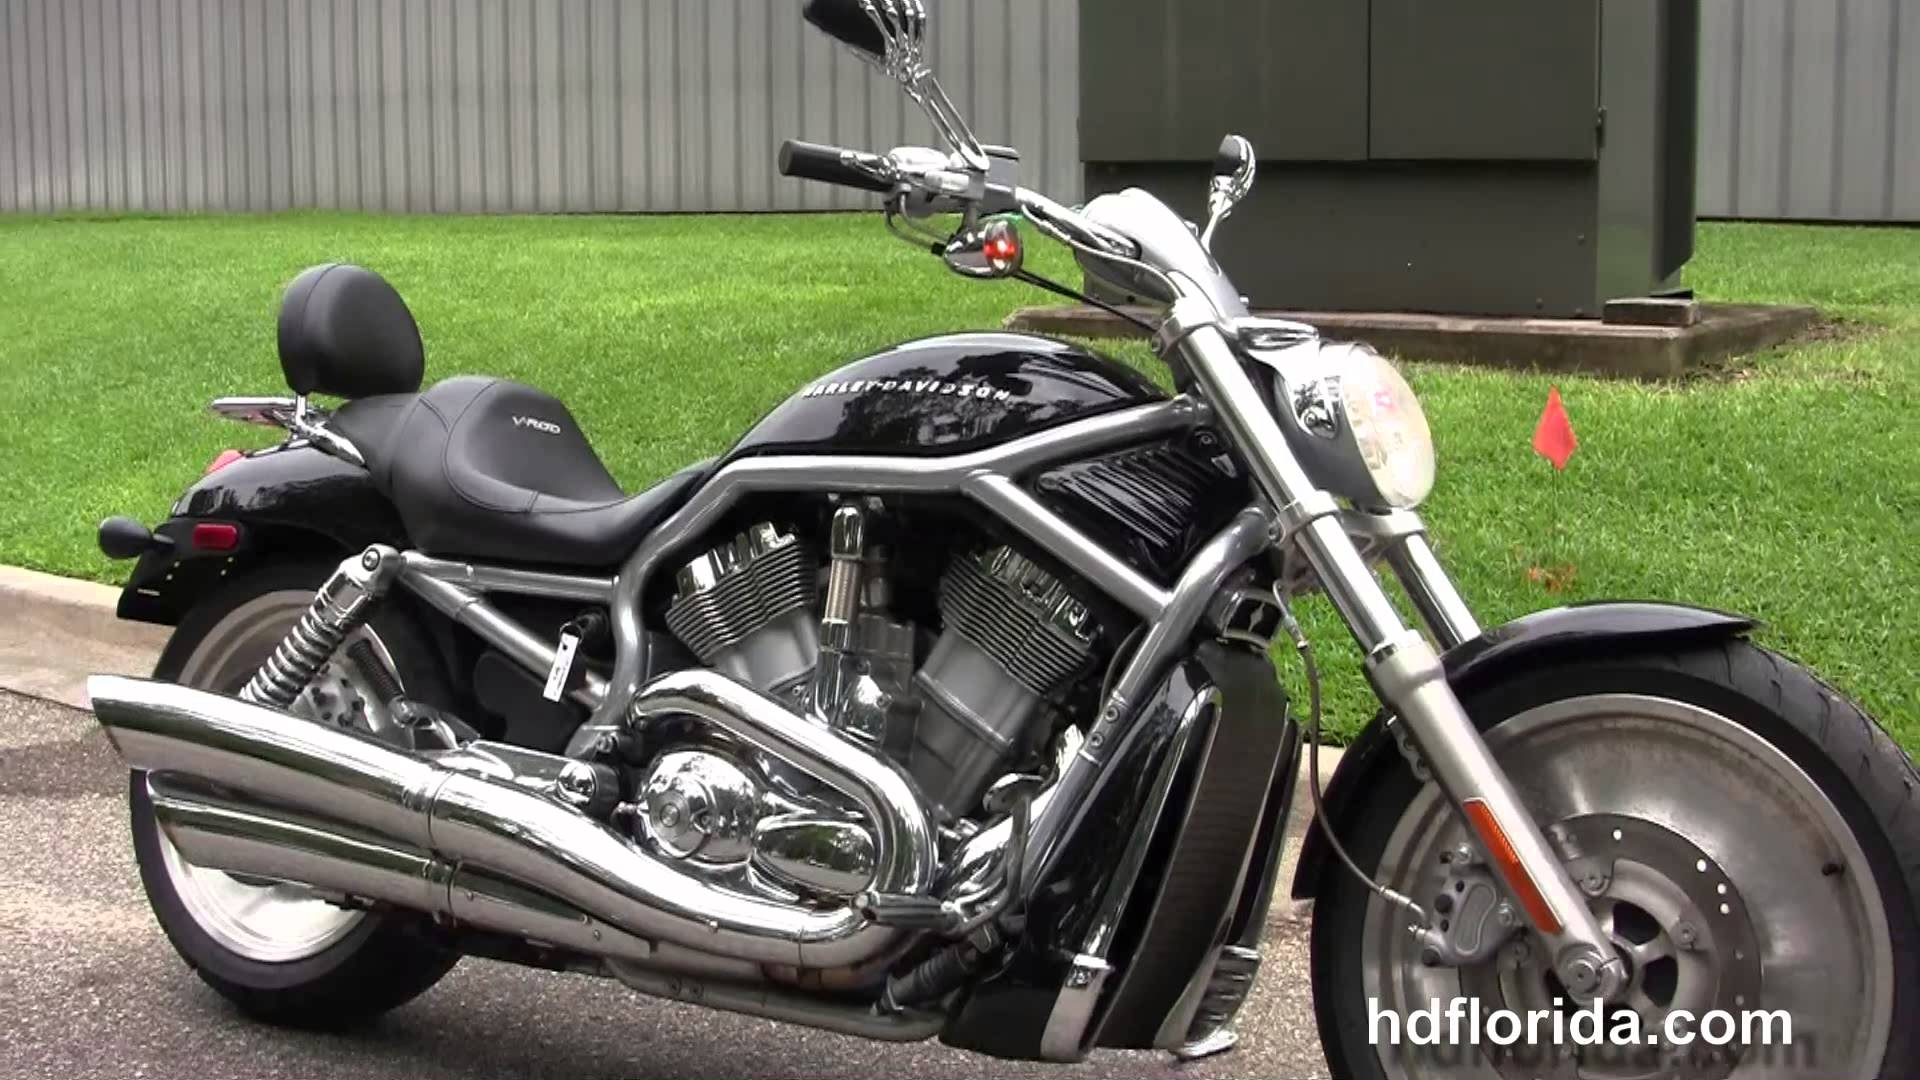 2002 harley davidson vrsca v rod pics specs and information. Black Bedroom Furniture Sets. Home Design Ideas